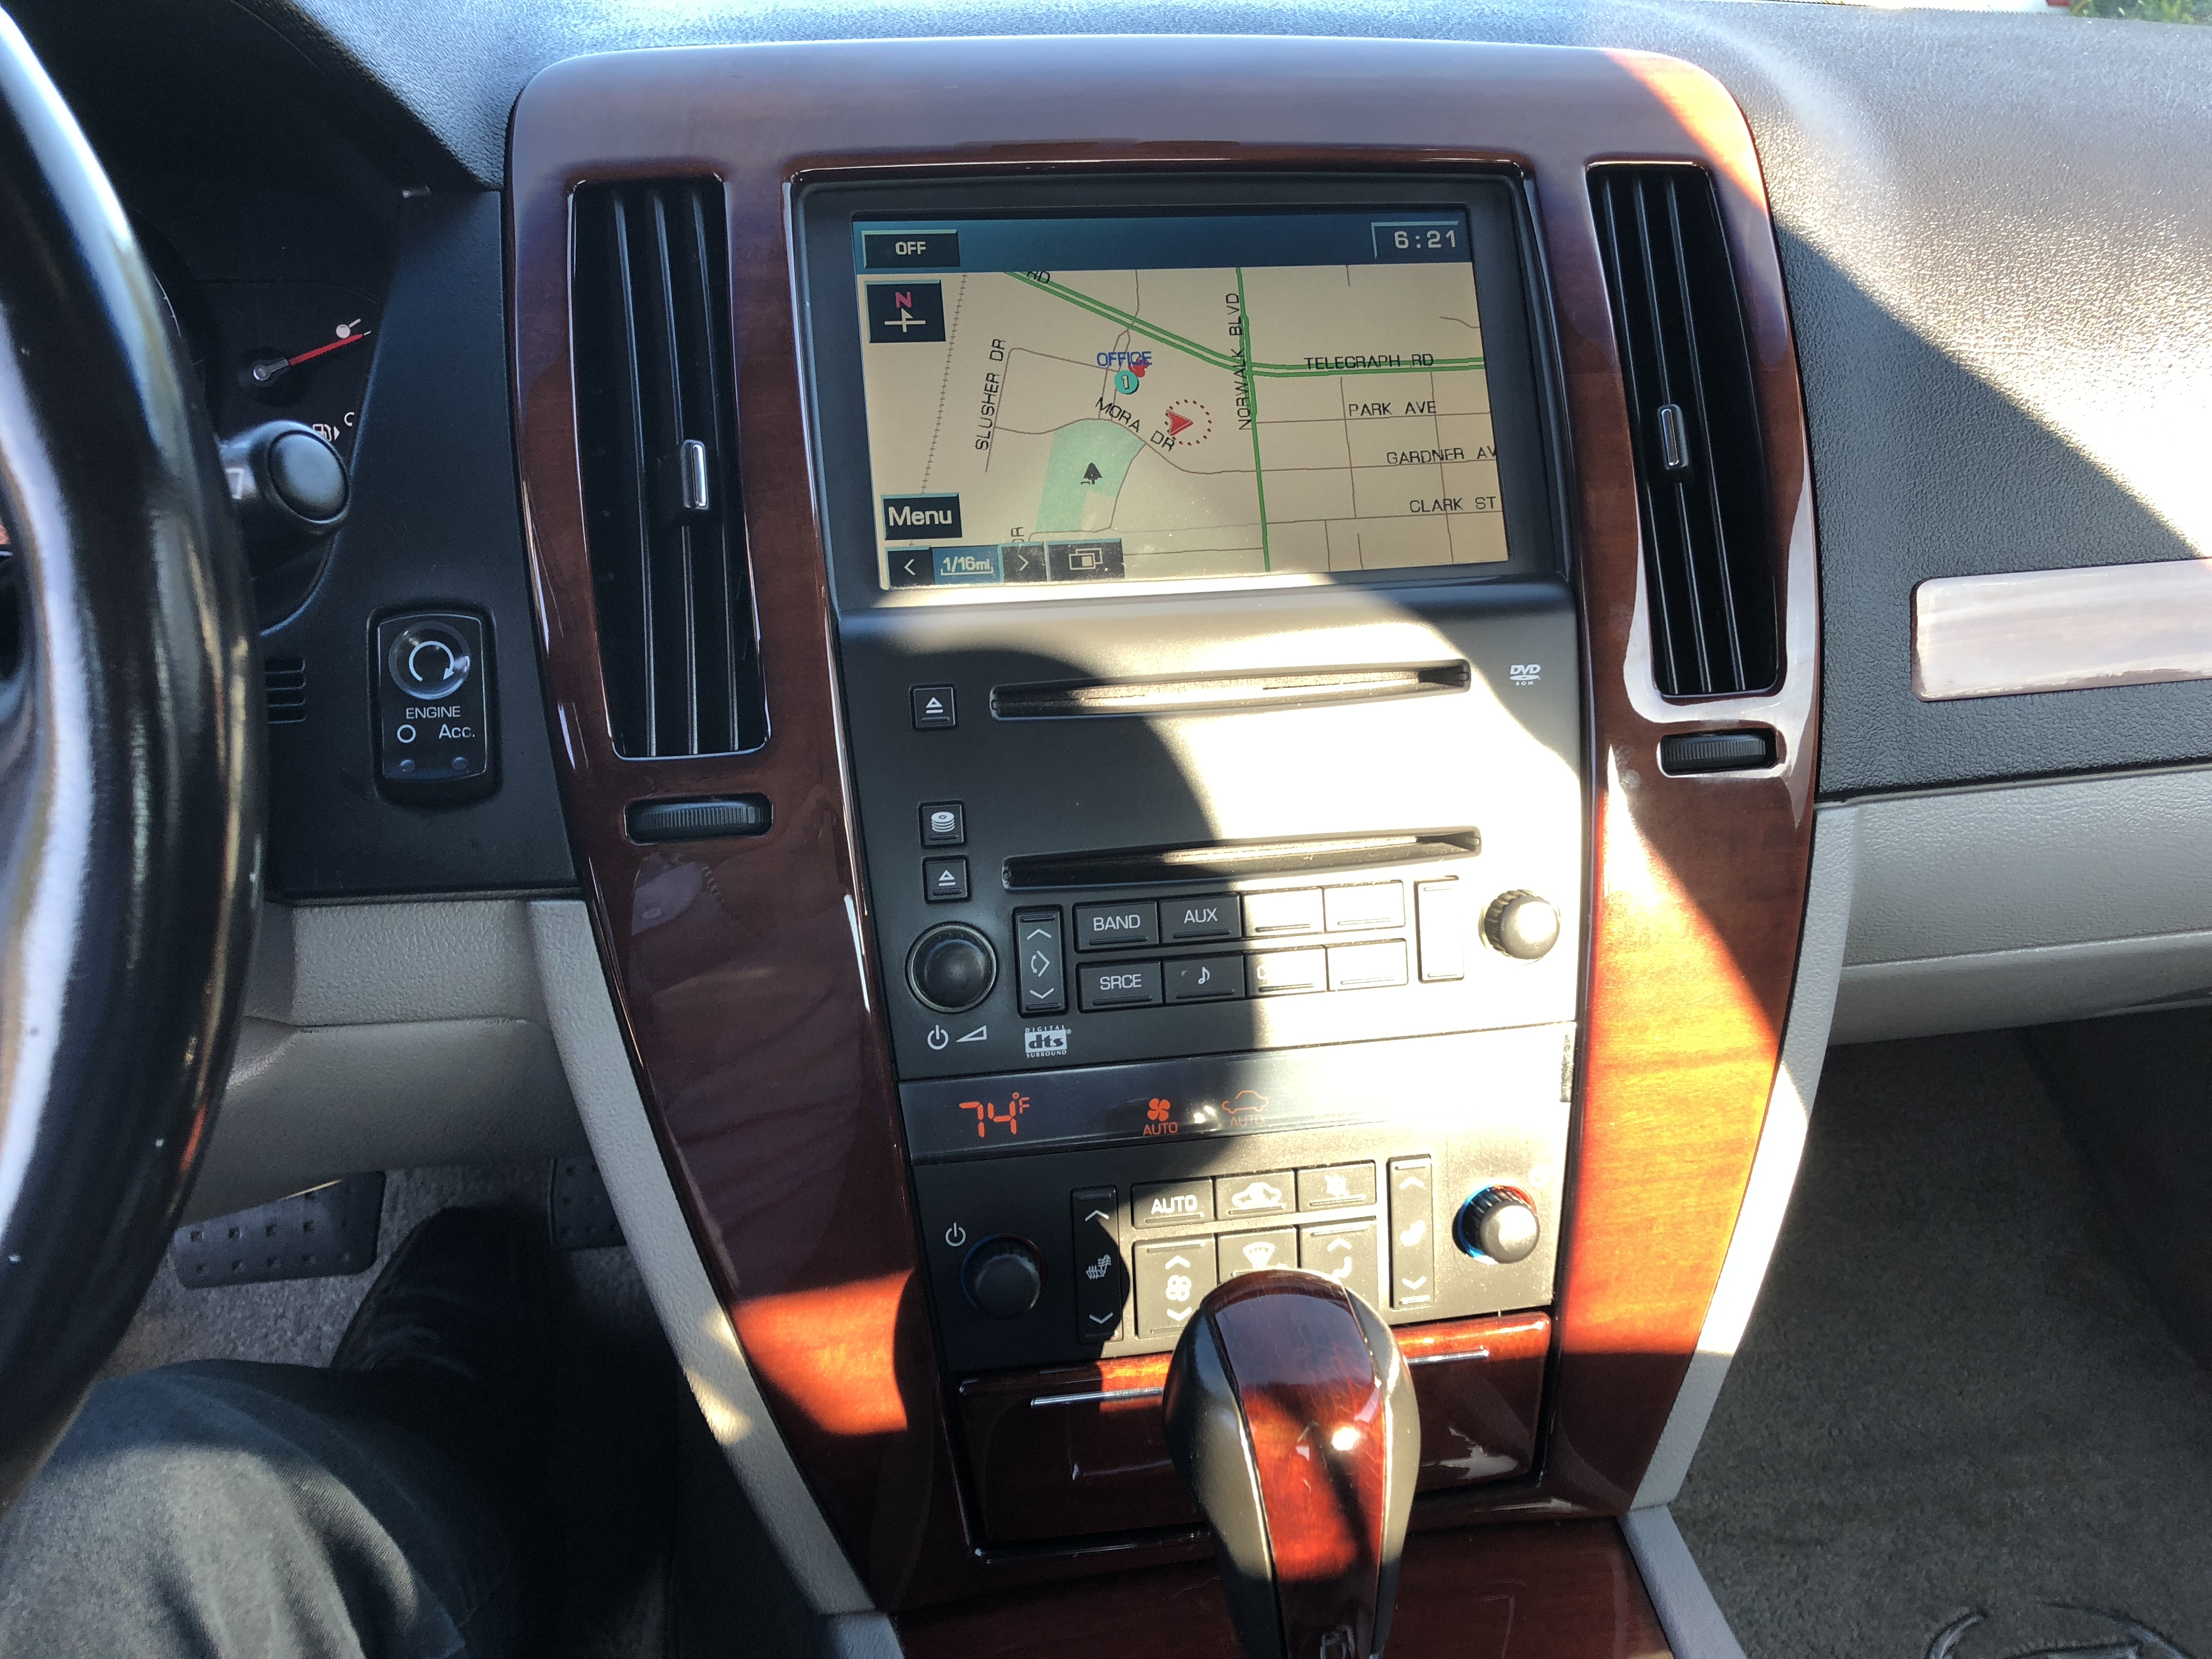 Used 2007 Cadillac STS For Sale in Norwalk, CA